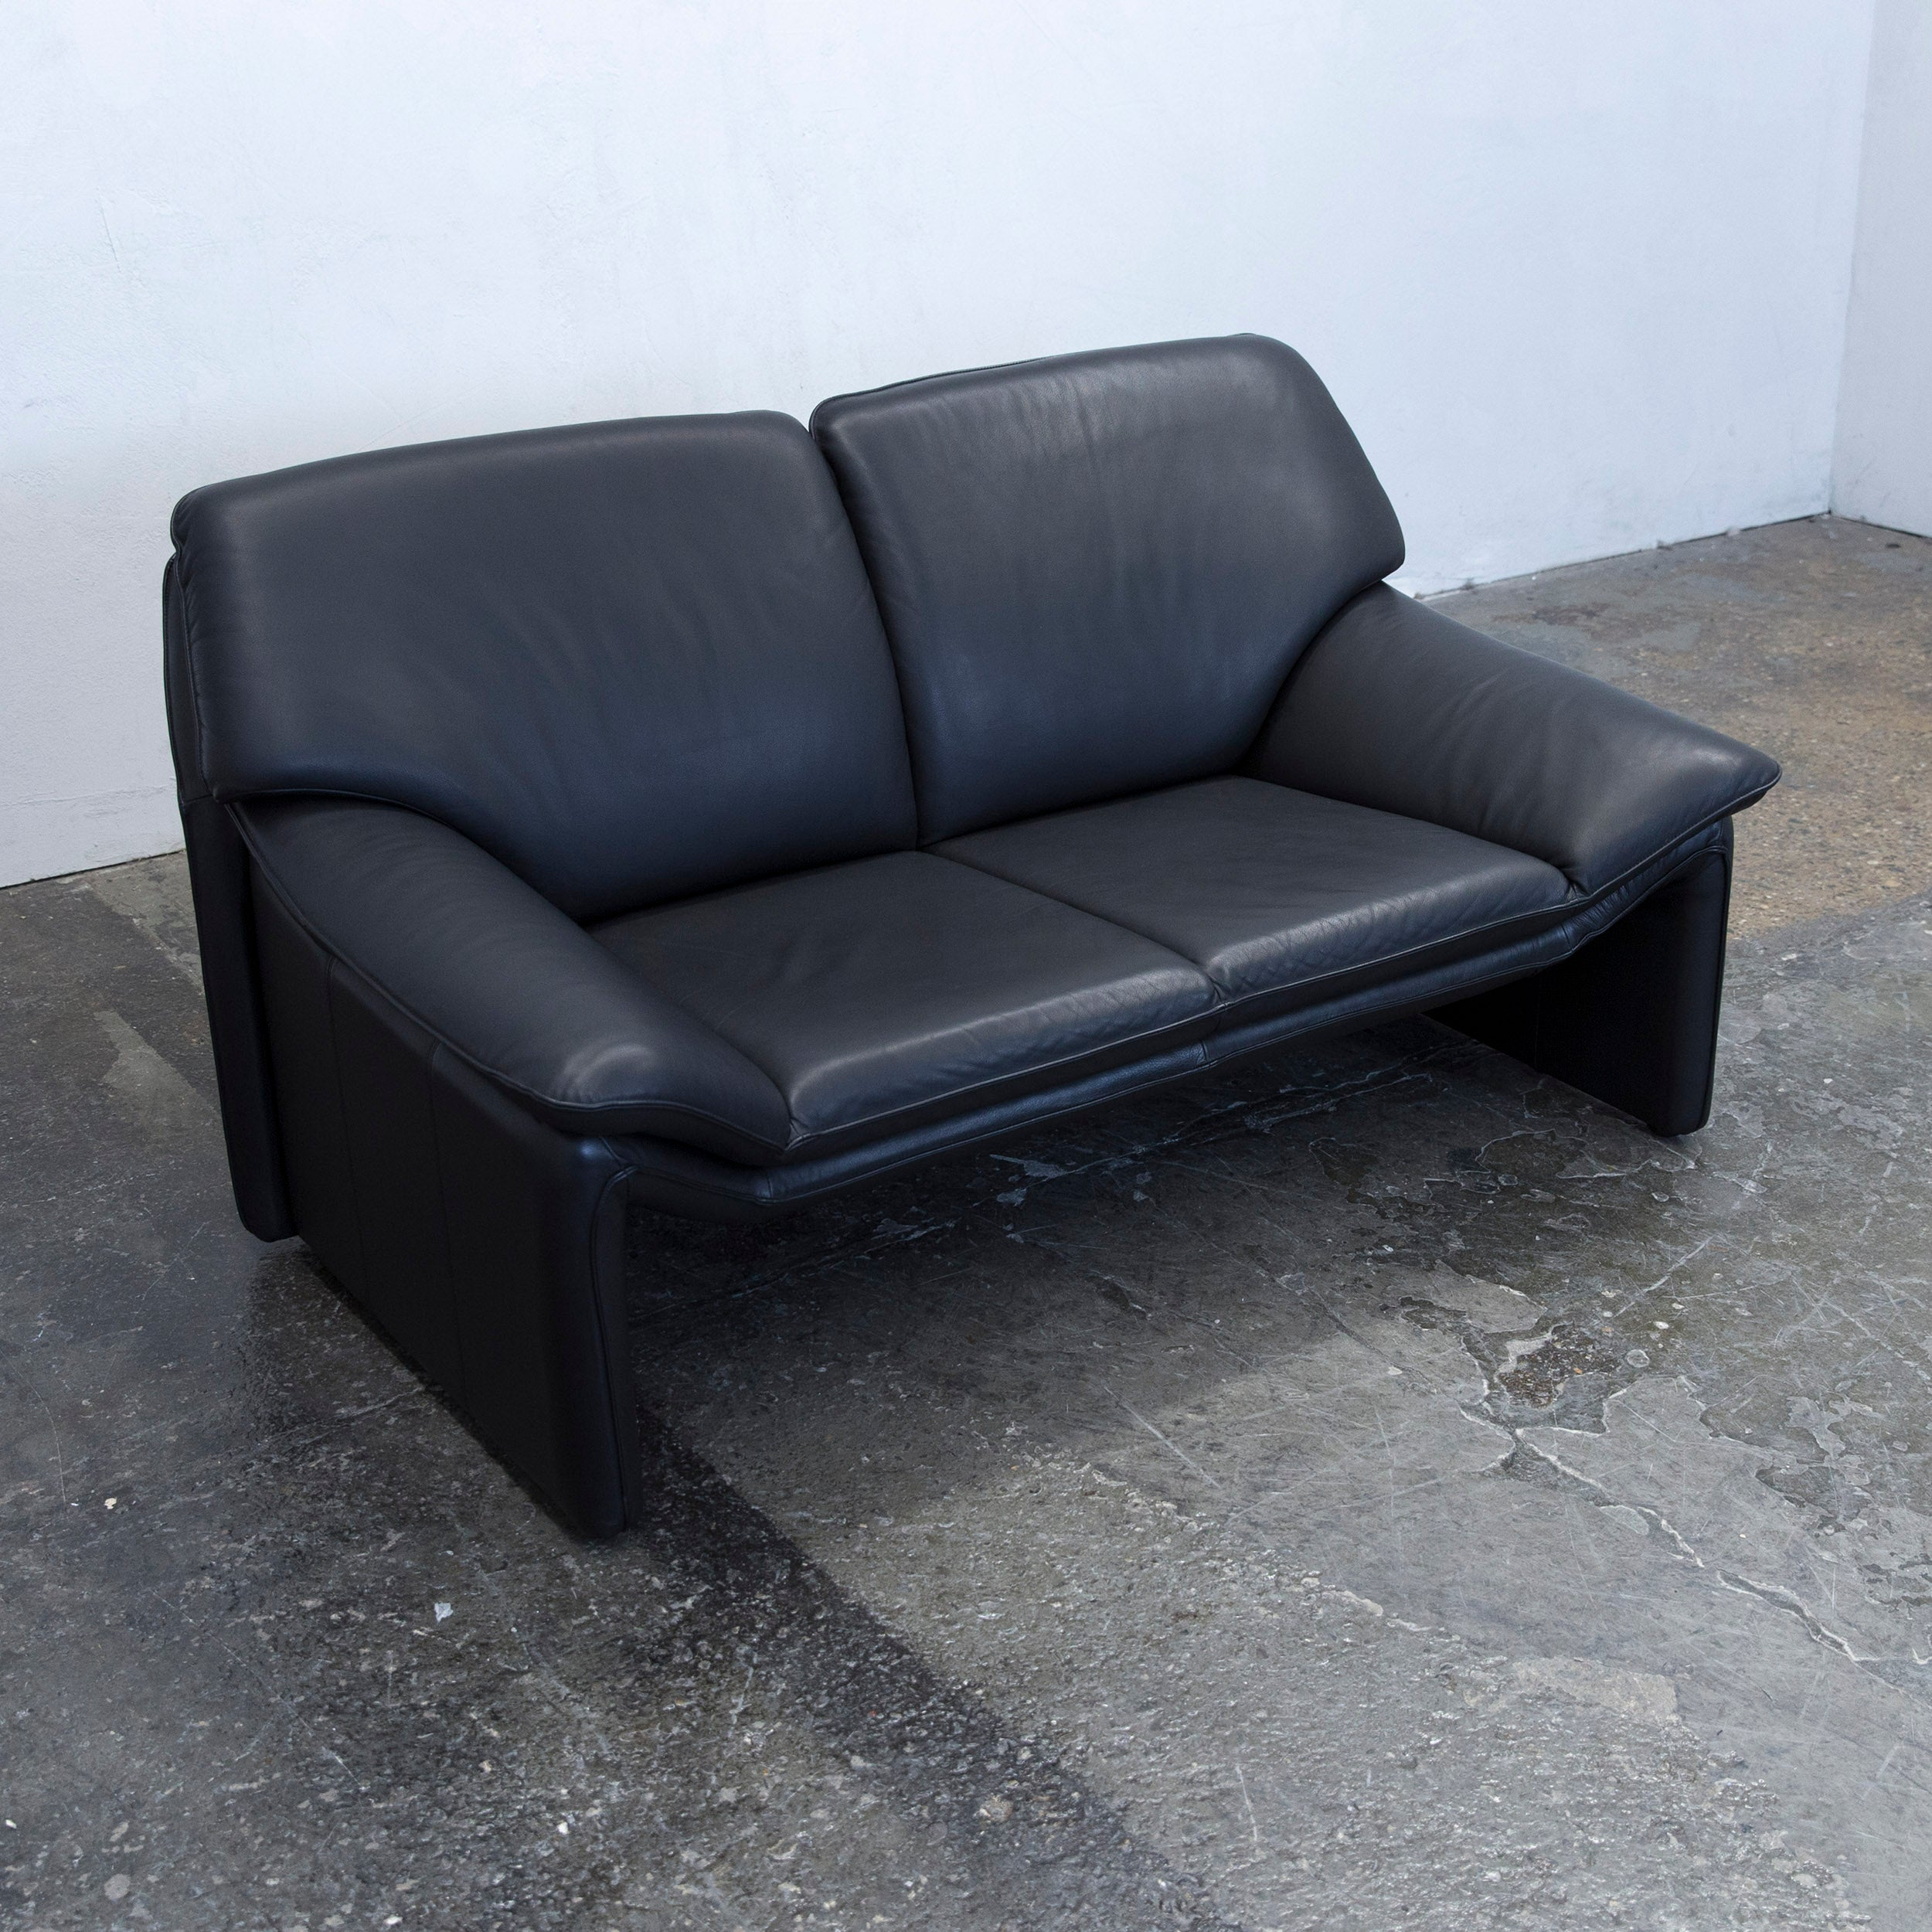 Laauser Atlanta Designer Sofa Leather Black Two Seat Couch Modern At 1stdibs